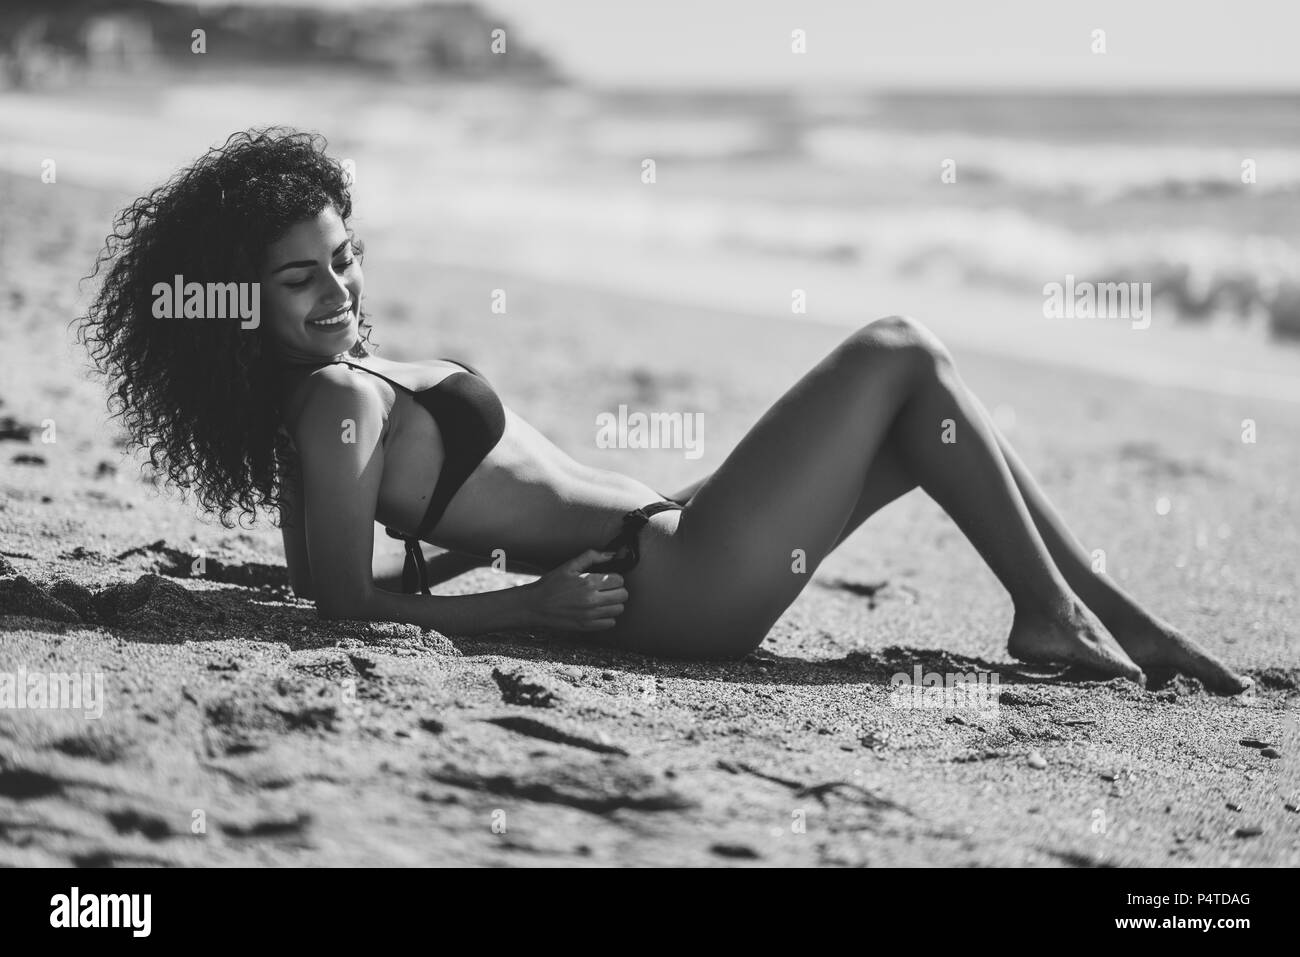 Young arabic woman with beautiful body in swimwear lying on the beach sand. Smiling female with curly long hairstyle wearing black bikini. - Stock Image